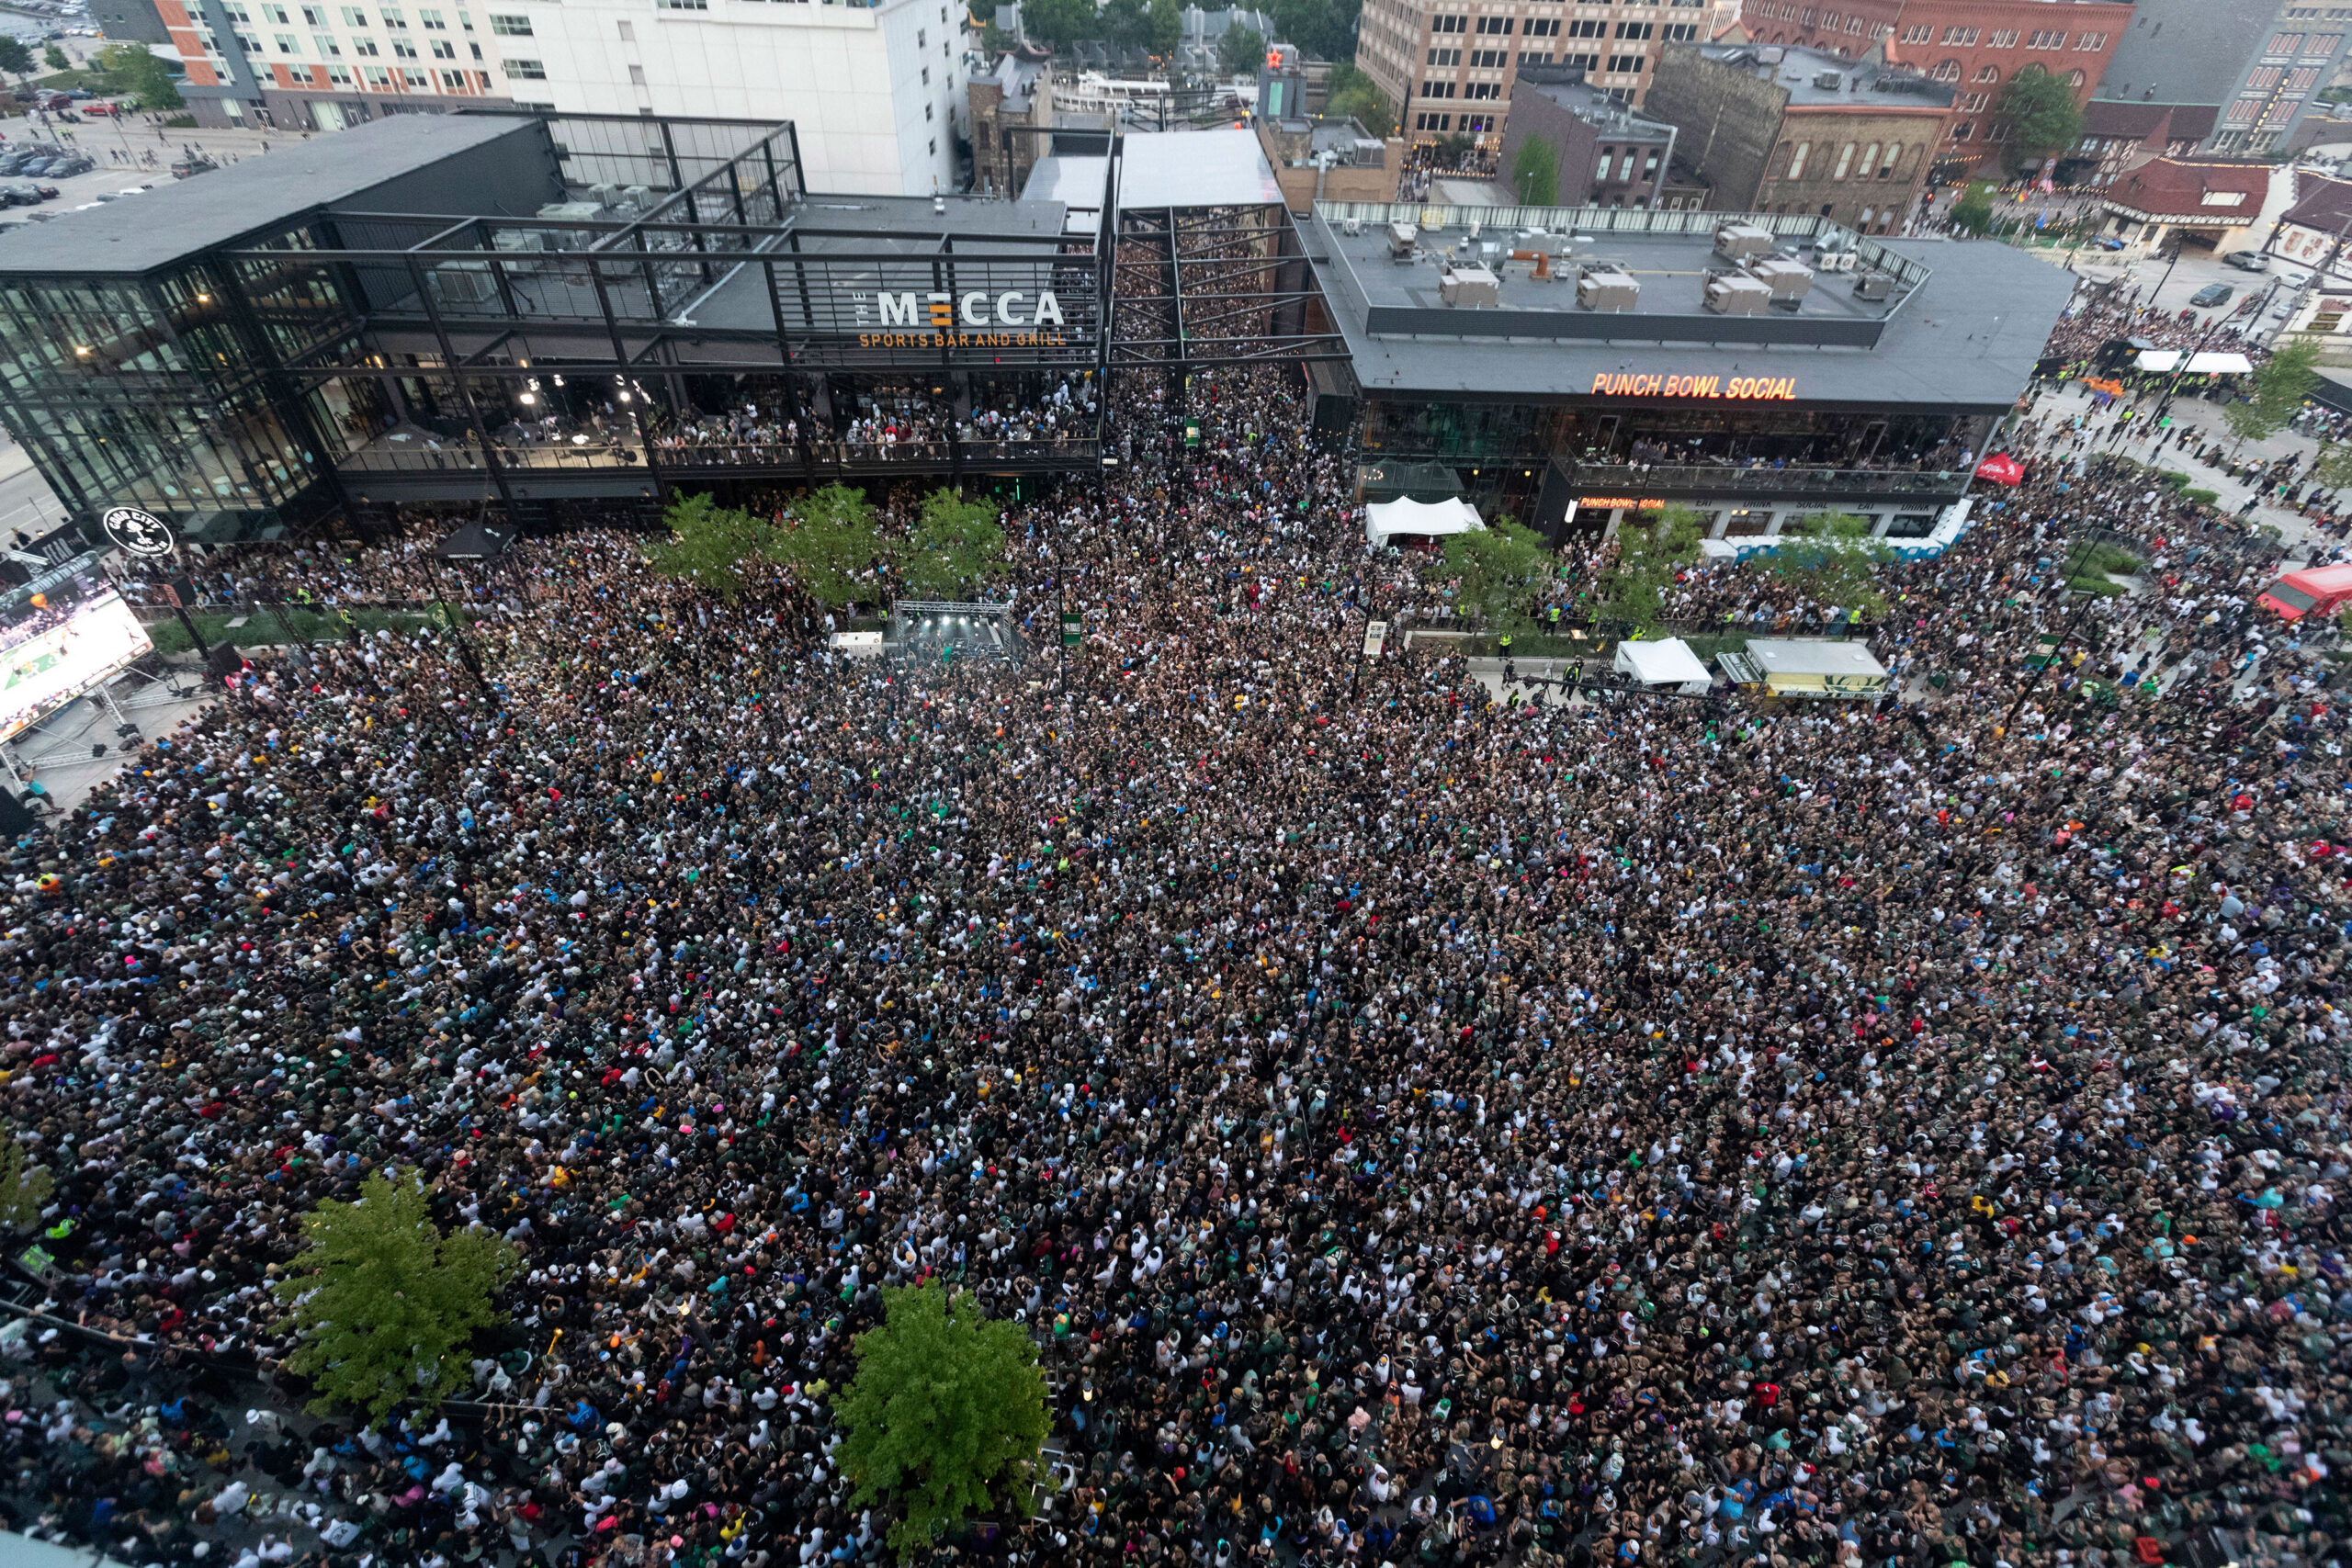 <i>Mark Hoffman/Milwaukee Journal Sentinel/USA Today Network</i><br/>Fans pack the Deer District during game six of the 2021 NBA Finals at Fiserv Forum on July 20.  Nearly 500 cases of Covid-19 have been reported following the event.